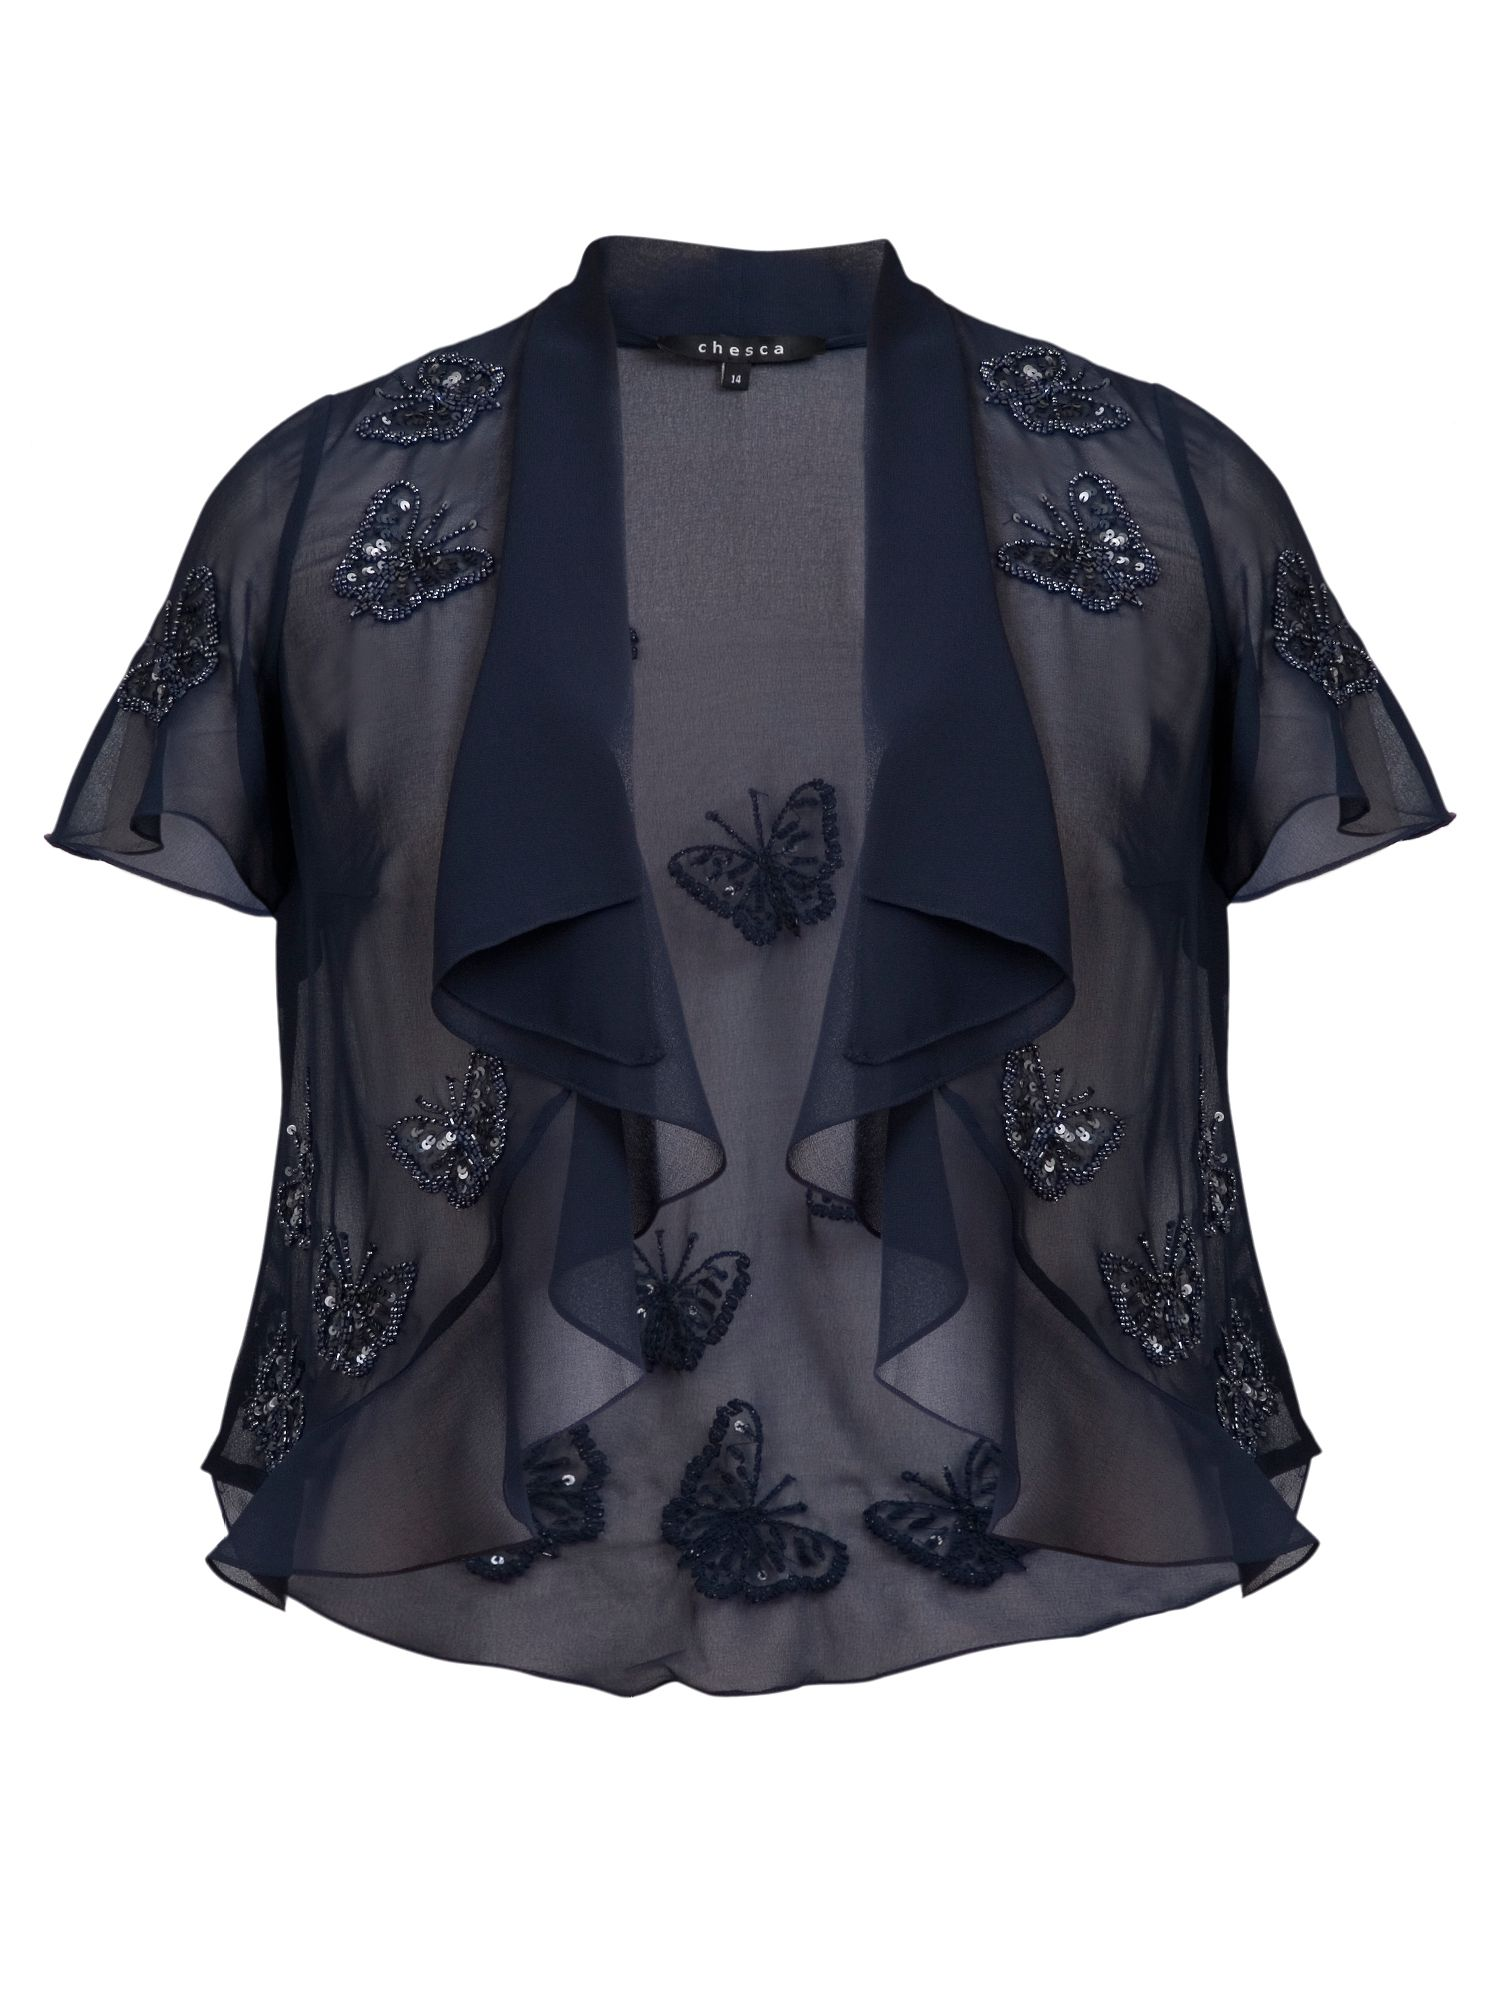 Butterfly beaded chiffon jacket